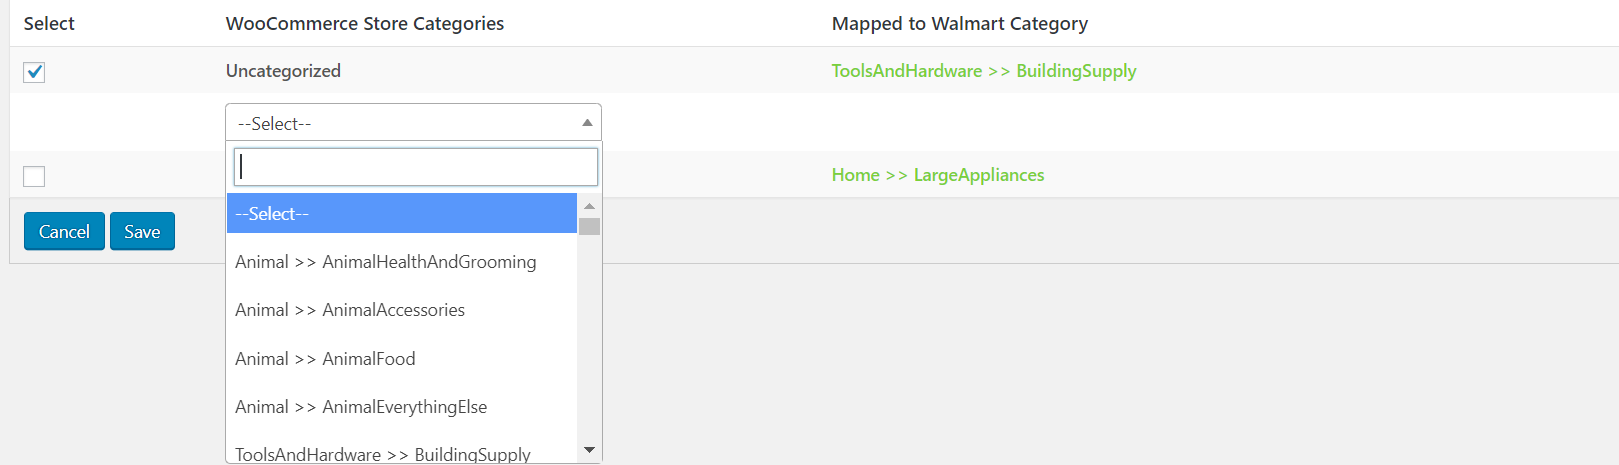 select category mapping